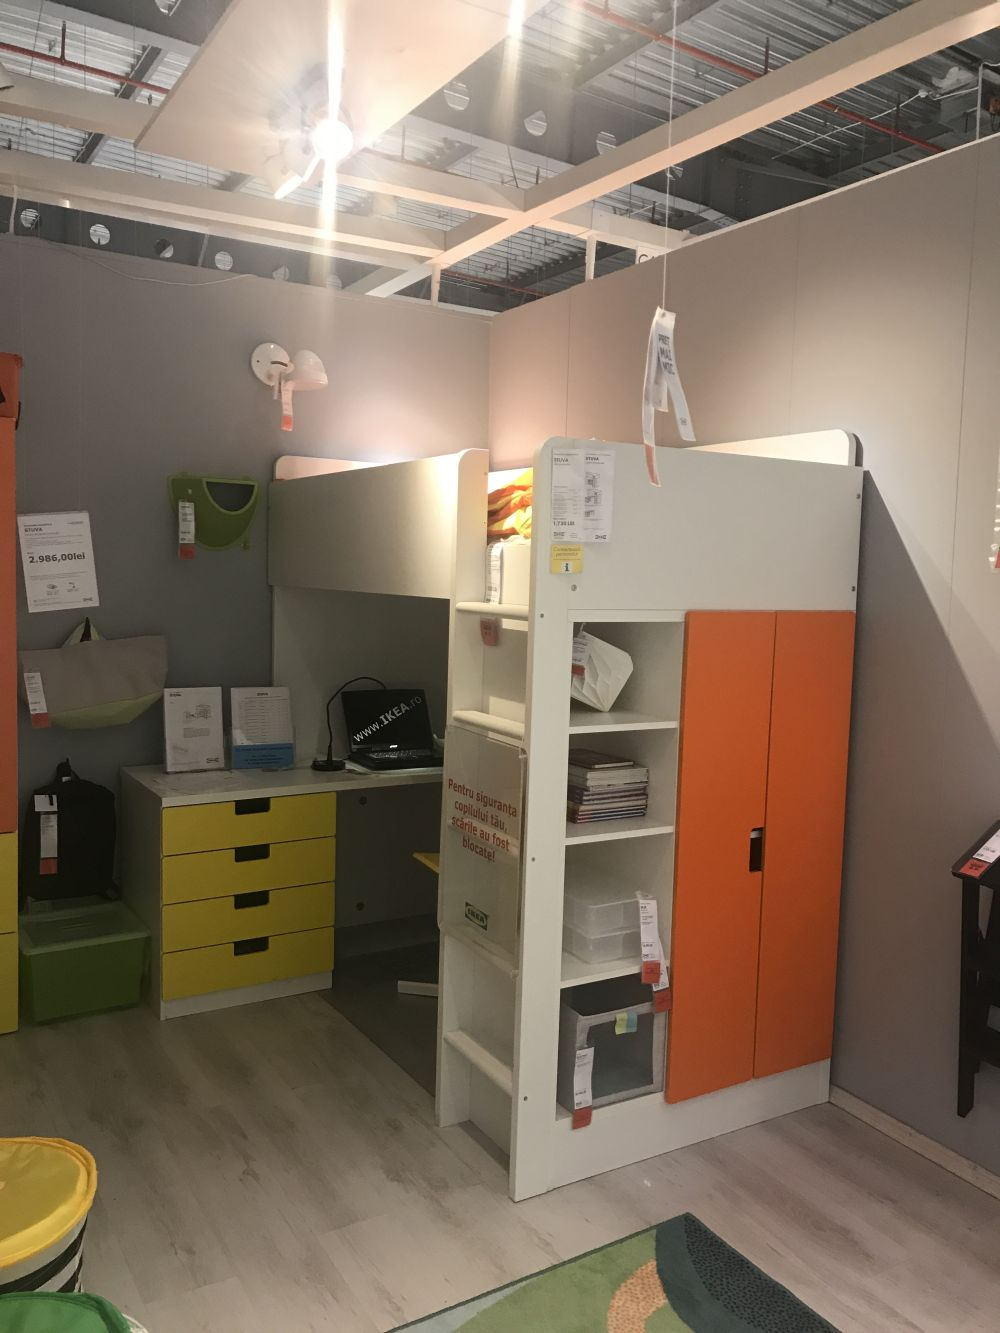 wwwikea bedroom furniture. Small Bedrooms Can Benefit From A Raised Bed With Desk Situated Underneath To Make The Wwwikea Bedroom Furniture